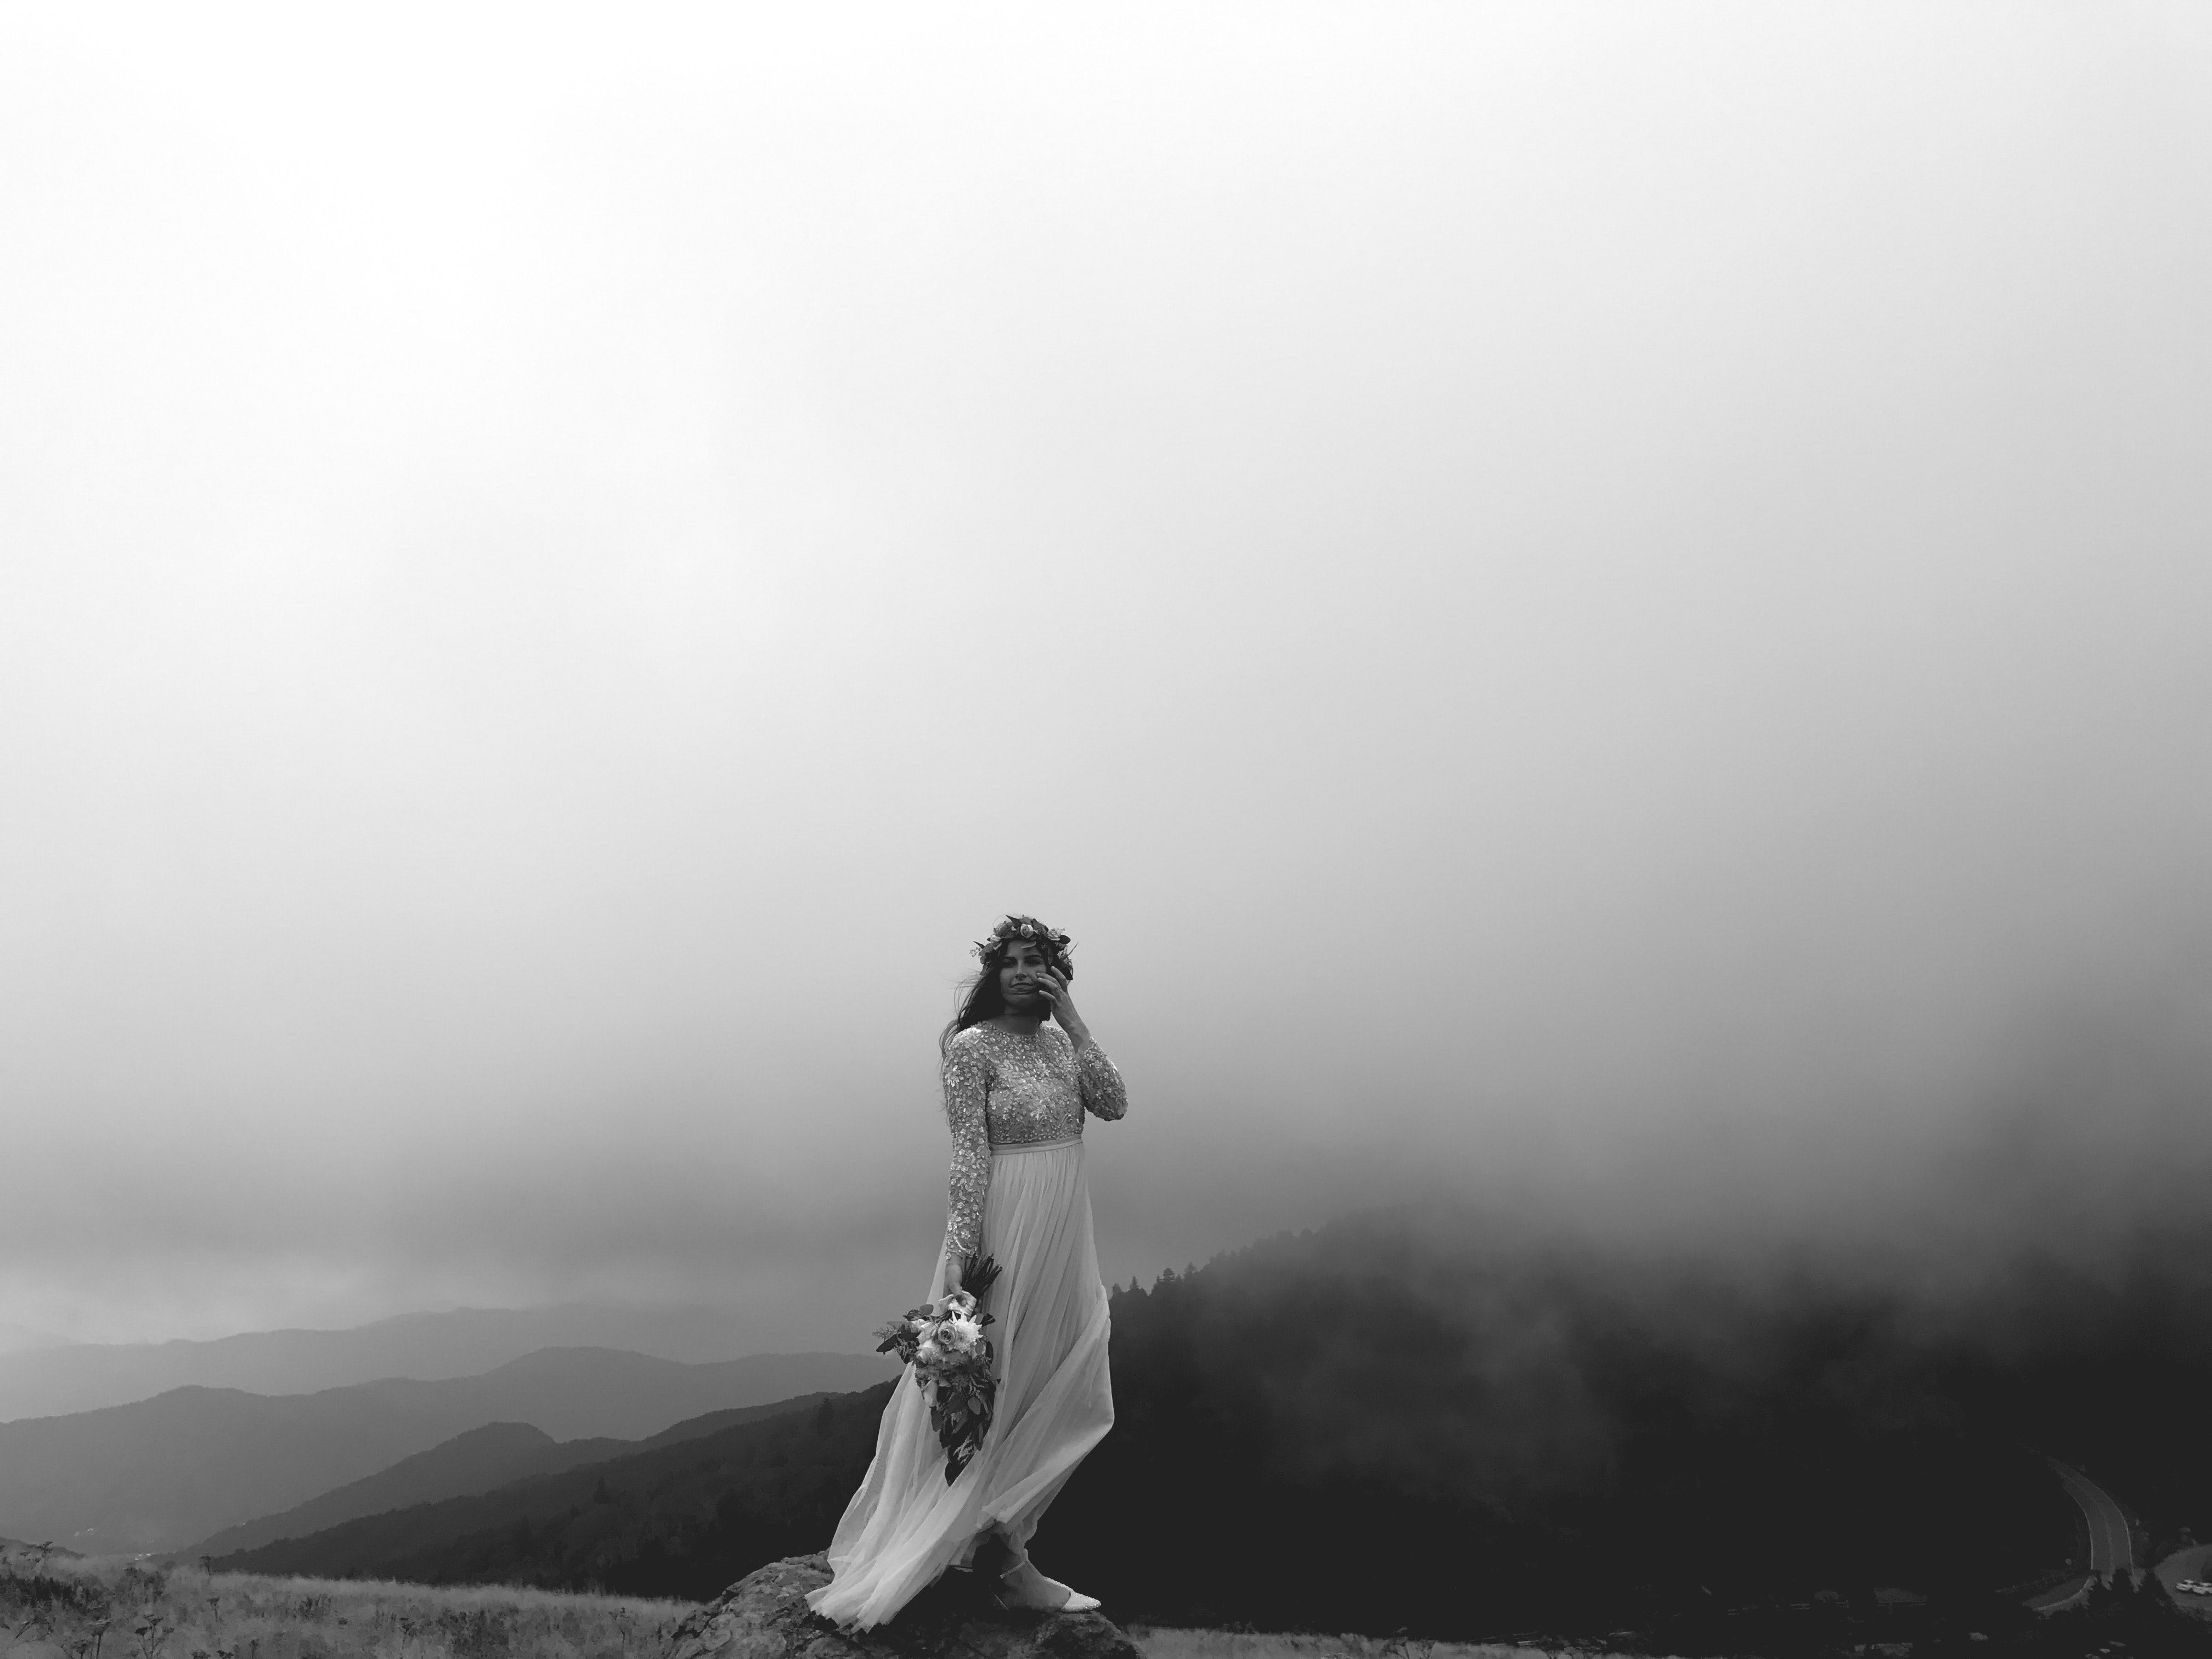 grayscale photo of person in maxi dress